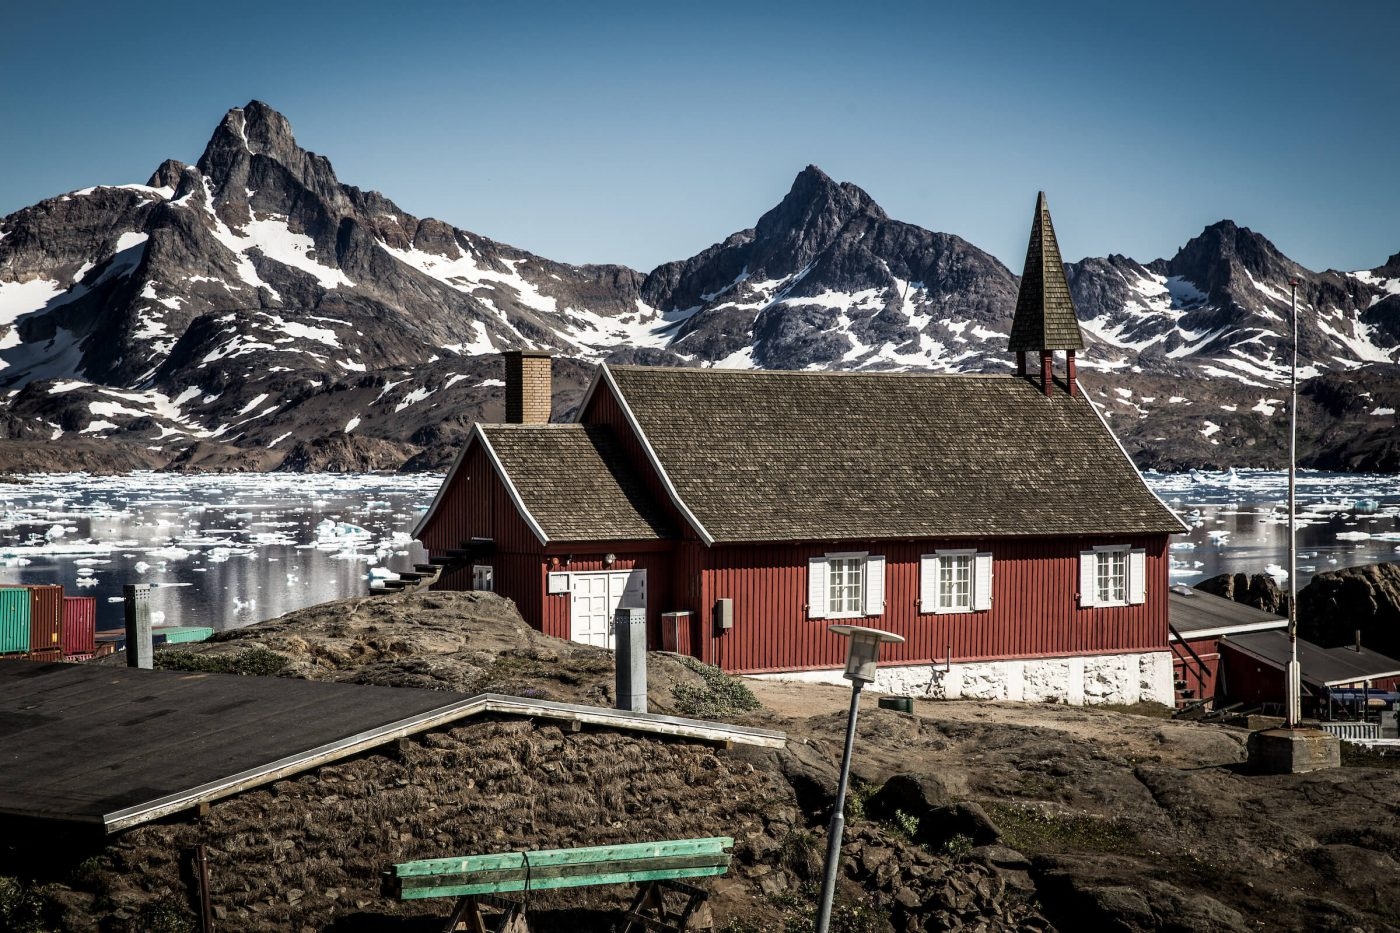 Tasiilaq Museum in the old church in Tasiillaq, East Greenland. Photo by Mads Pihl – Visit Greenland